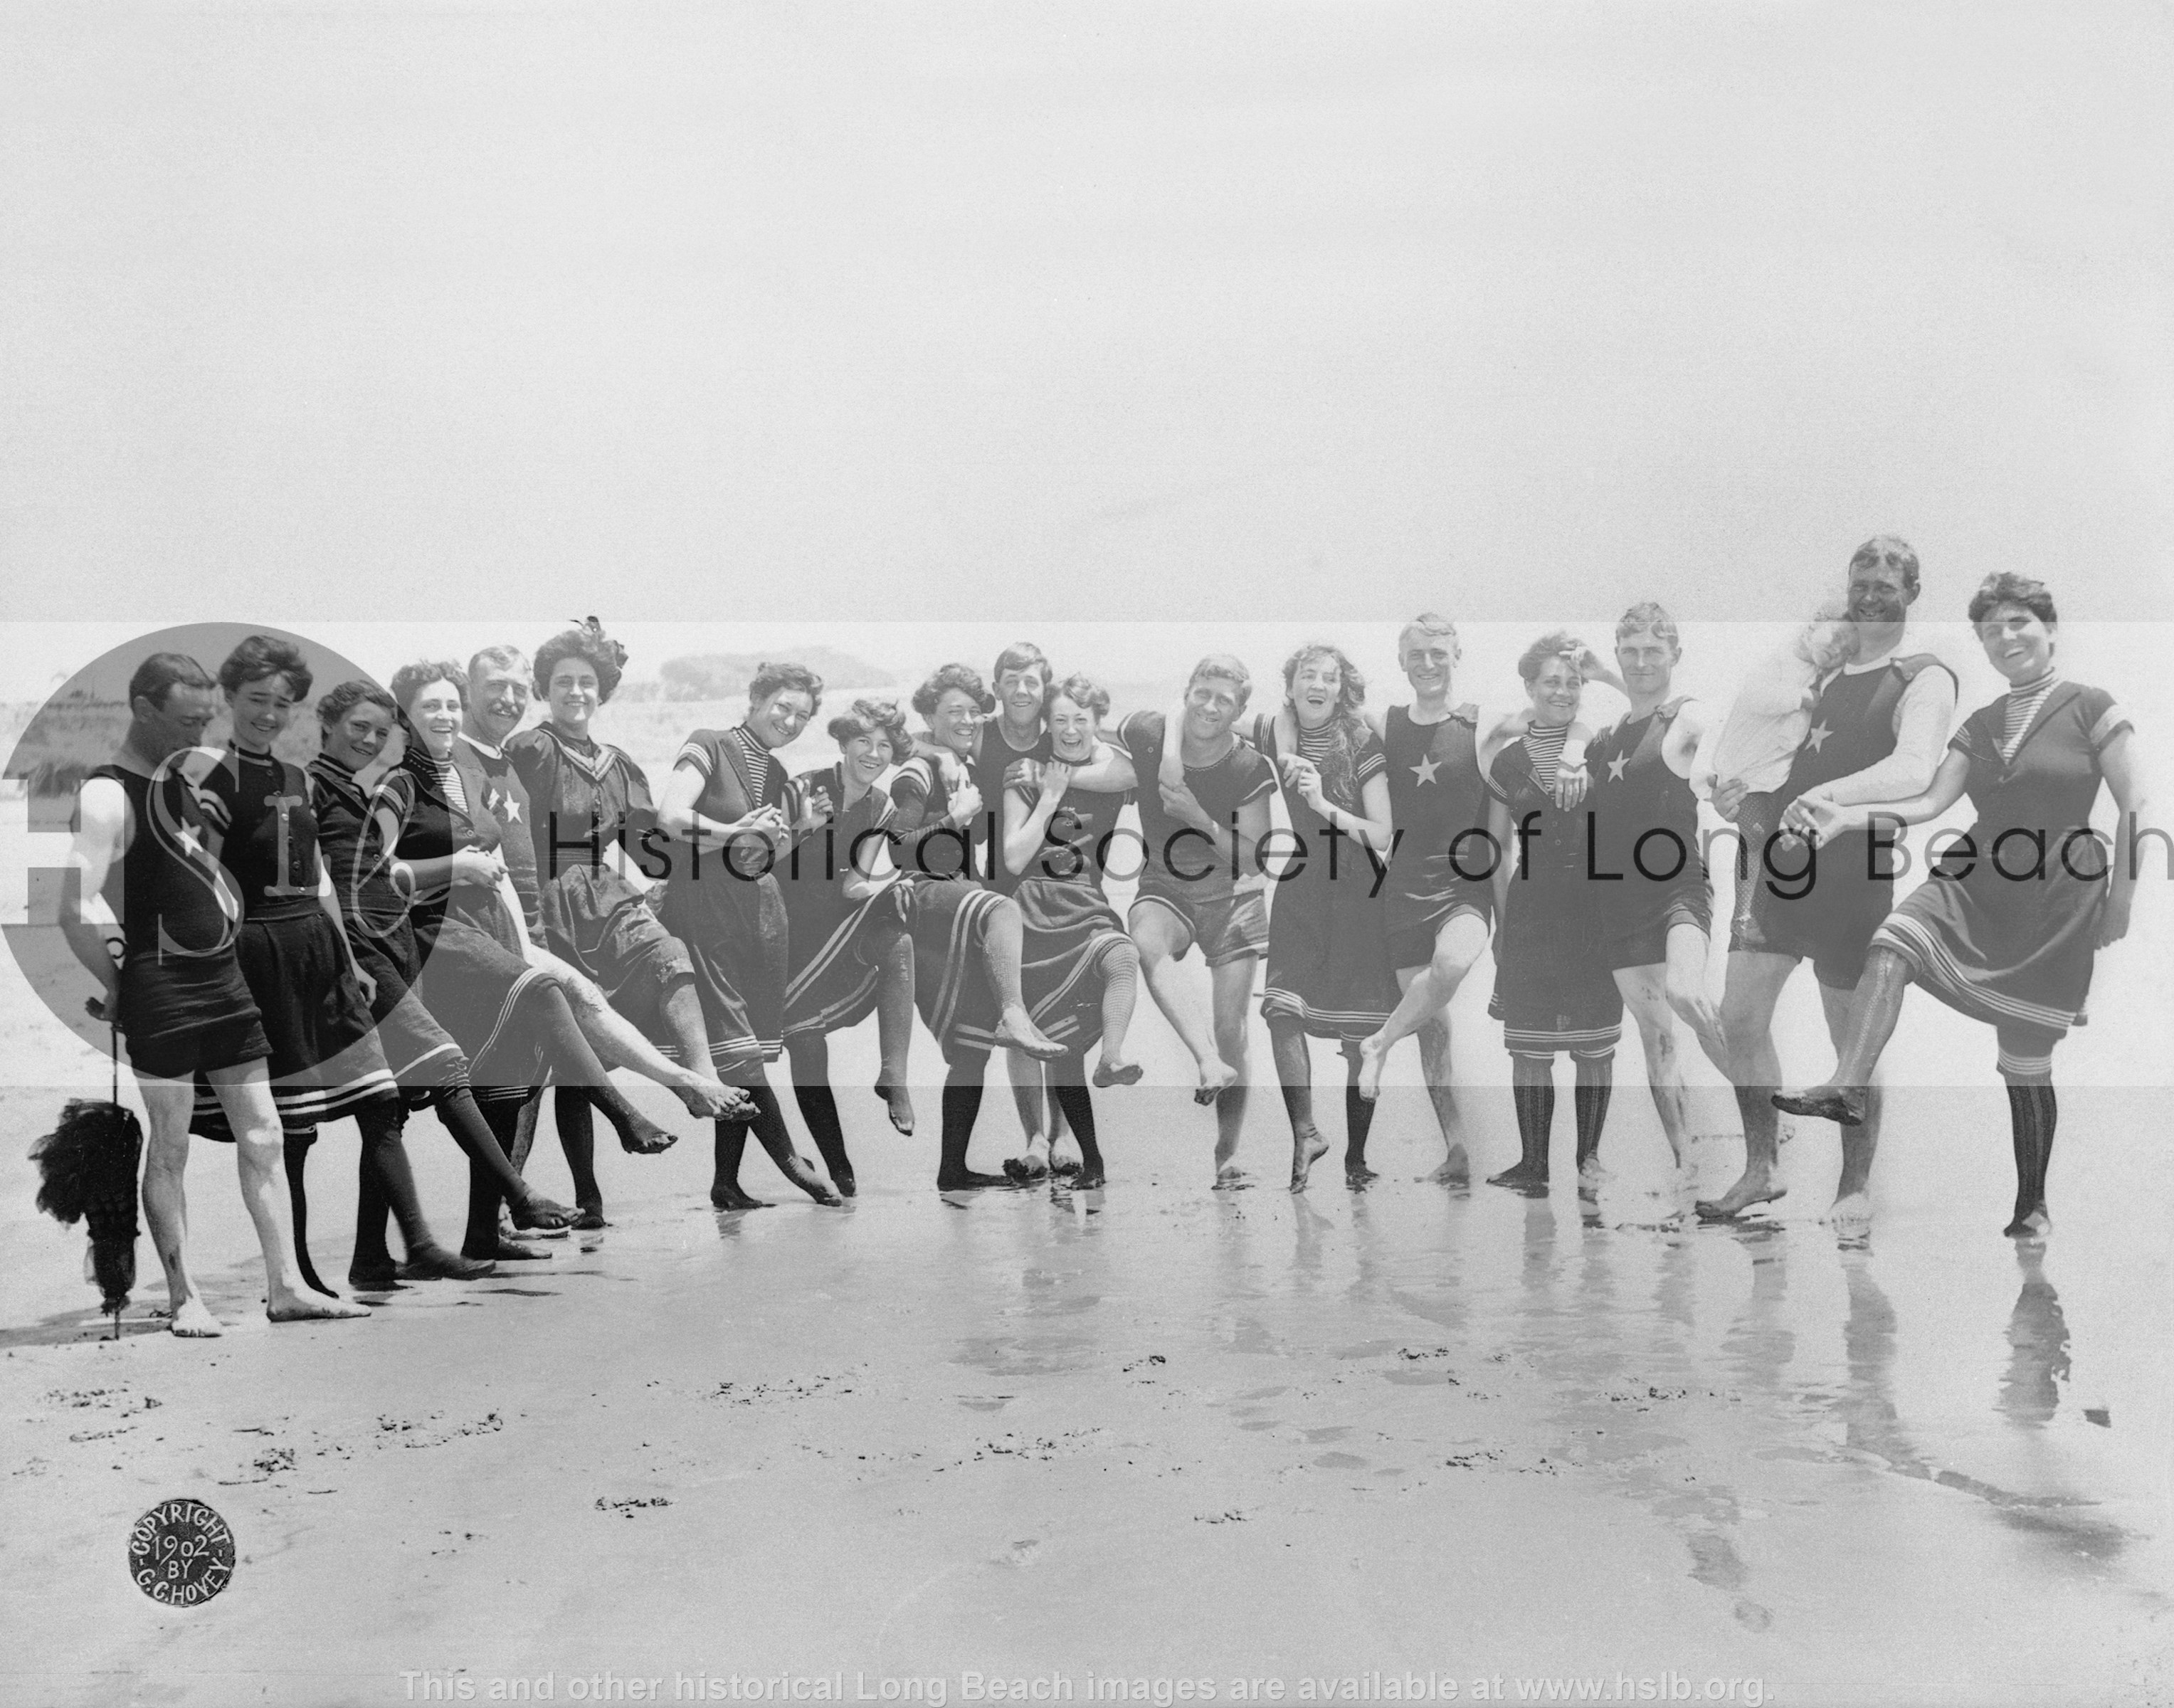 Bathers on beach, 1902 vintage photograph